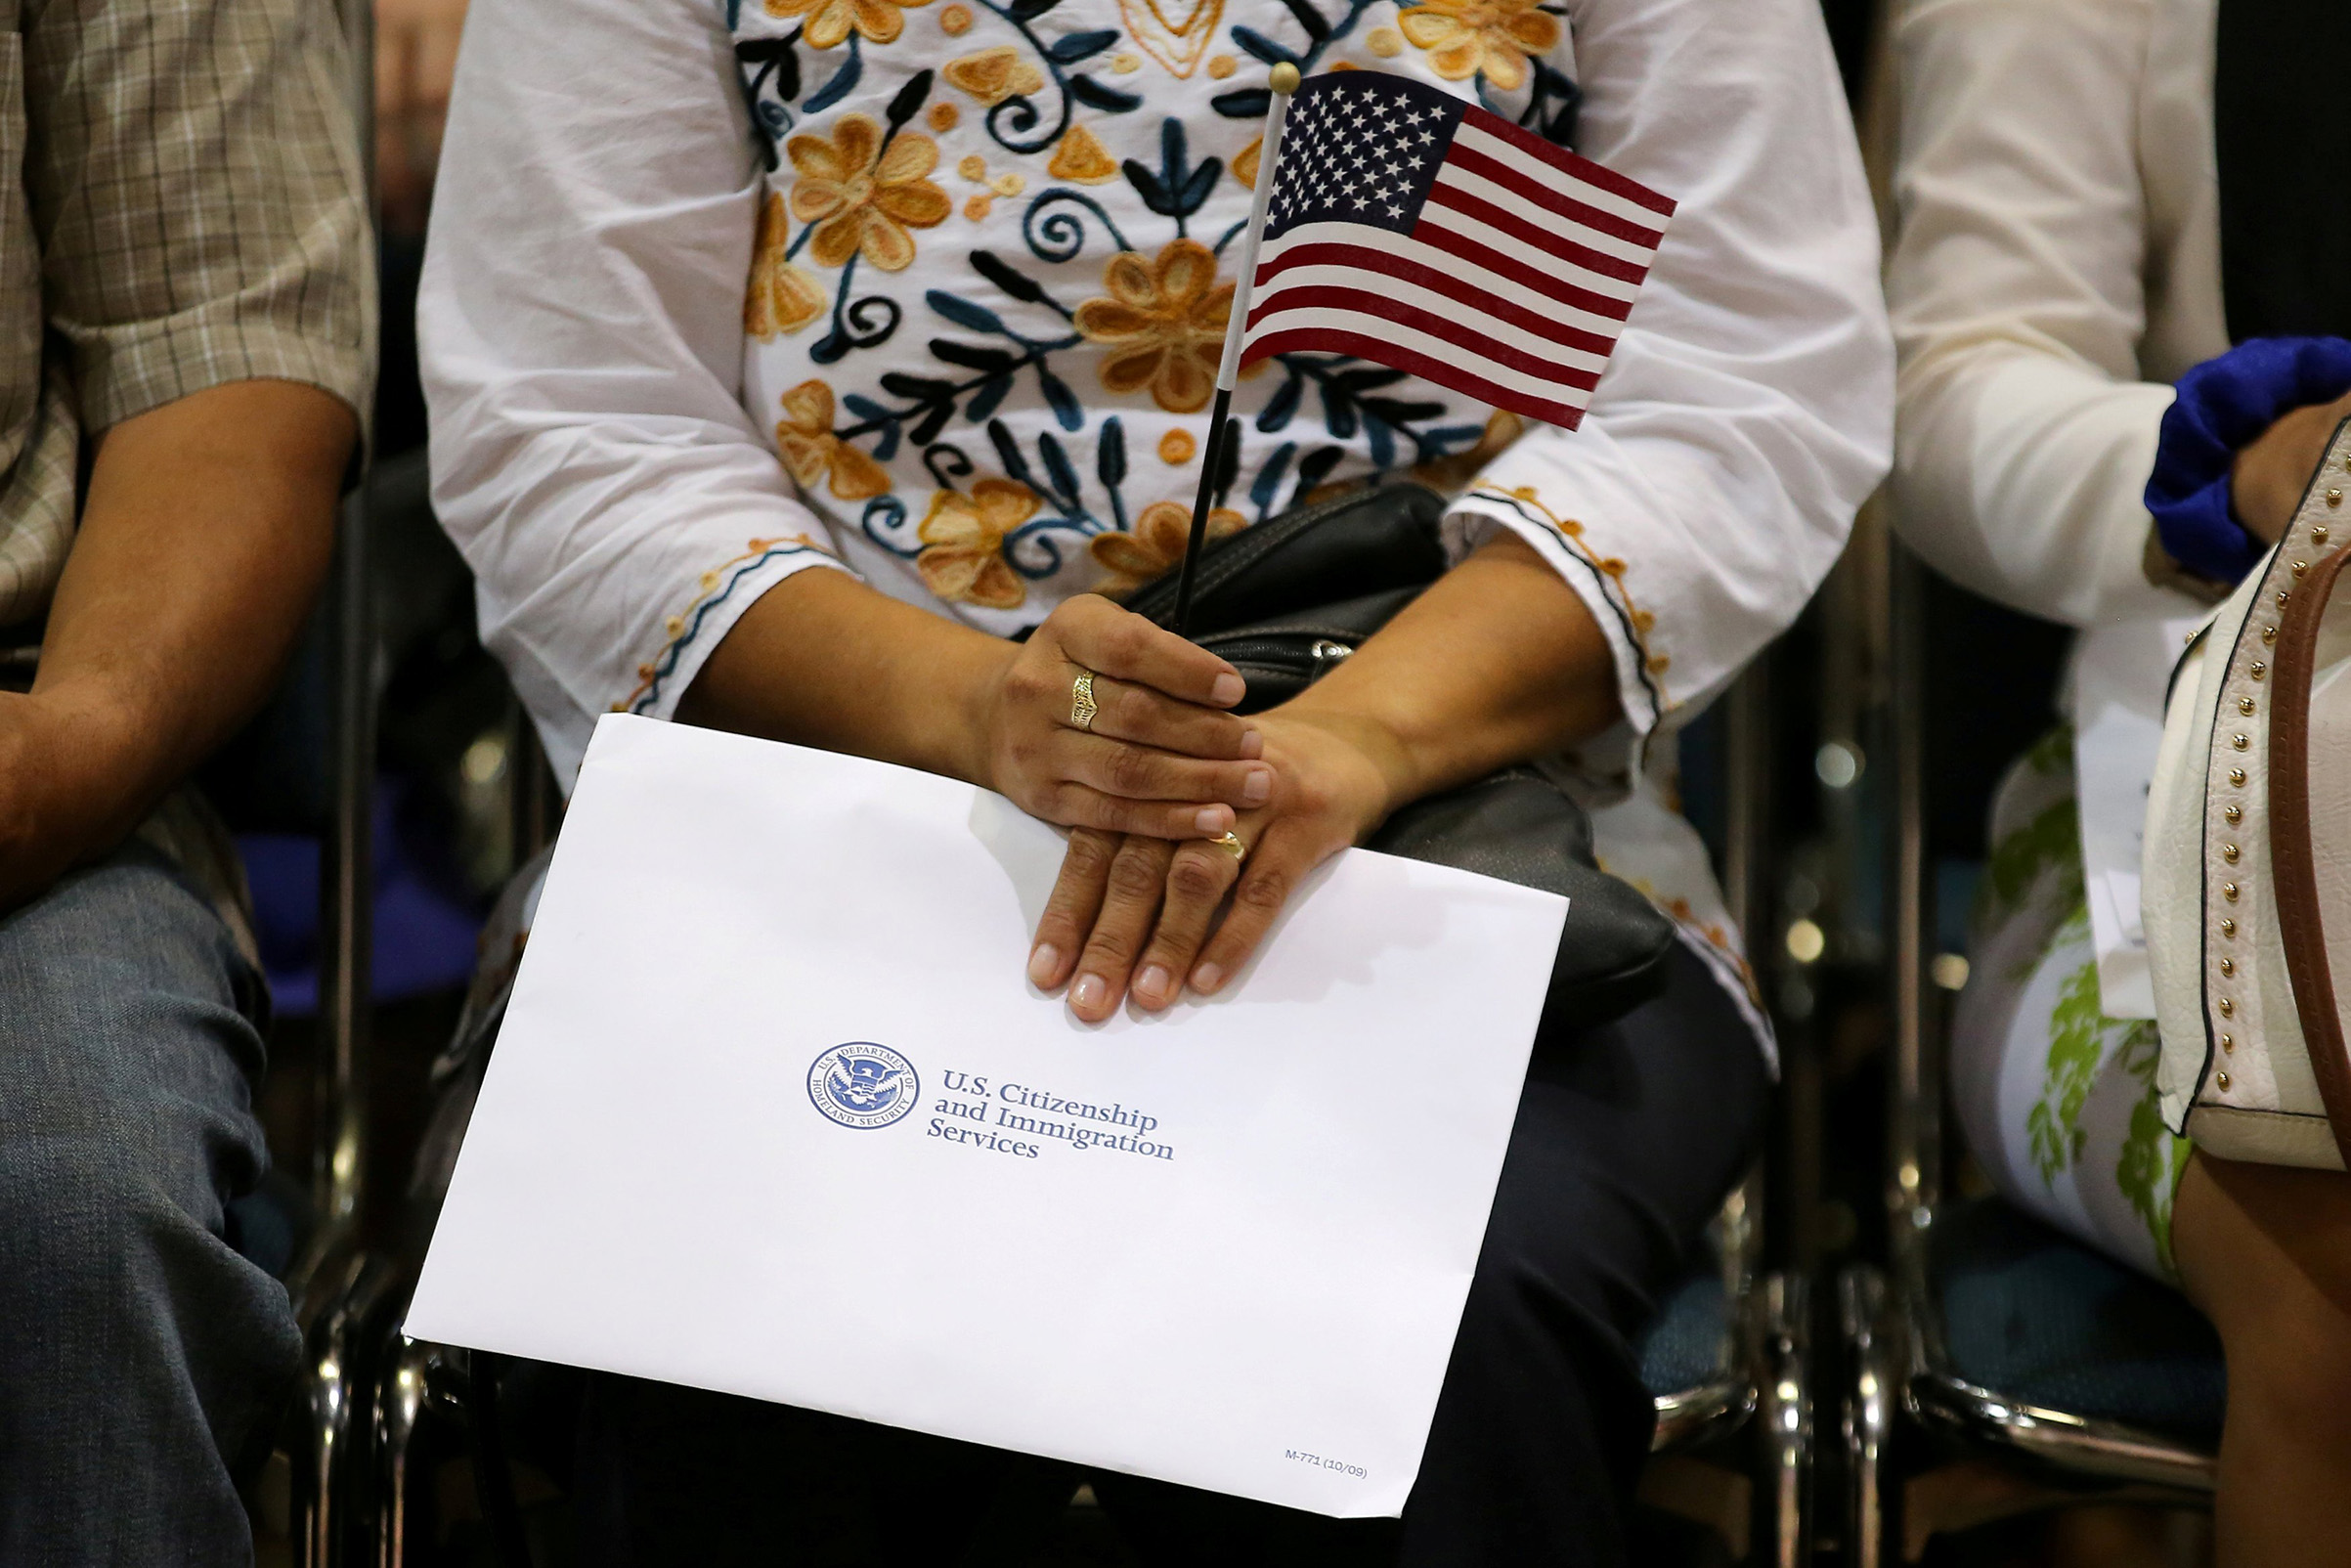 An attendee holds her new country's flag and her naturalization papers as she is sworn in during a U.S. citizenship ceremony in Los Angeles, on July 18, 2017.